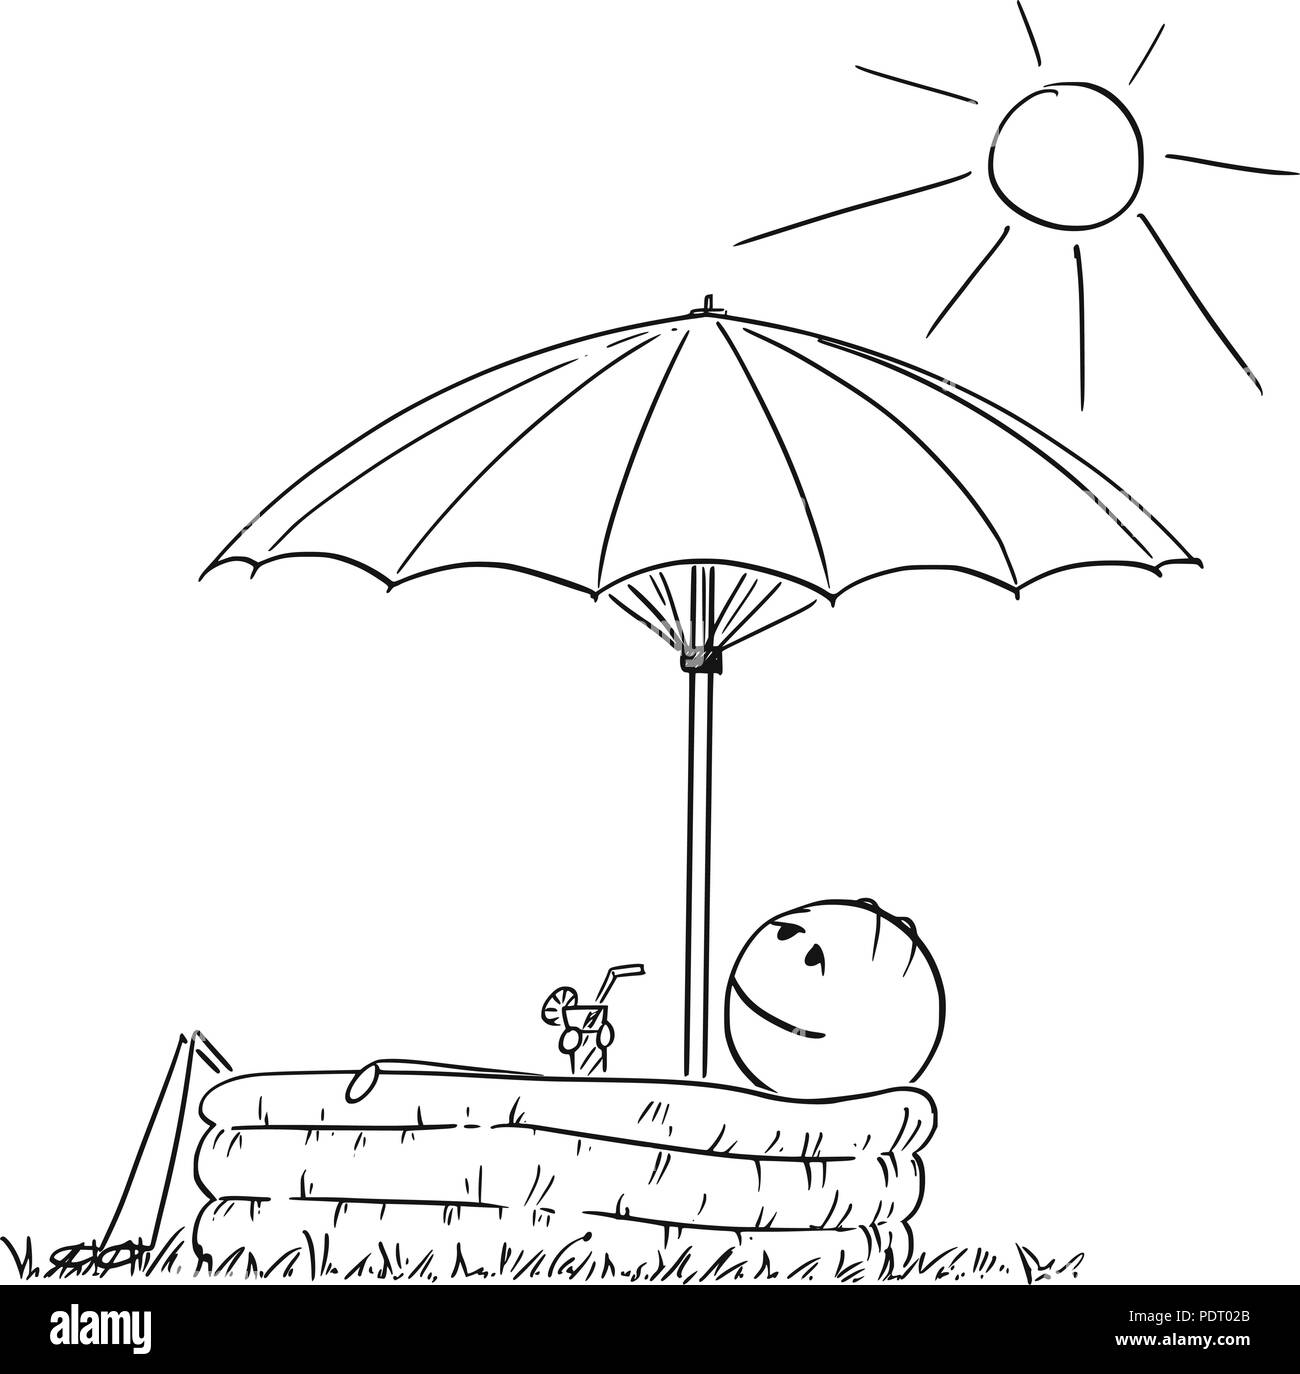 Cartoon of Man Enjoying in Inflatable Pool Under Umbrella With Drink in Hand - Stock Vector